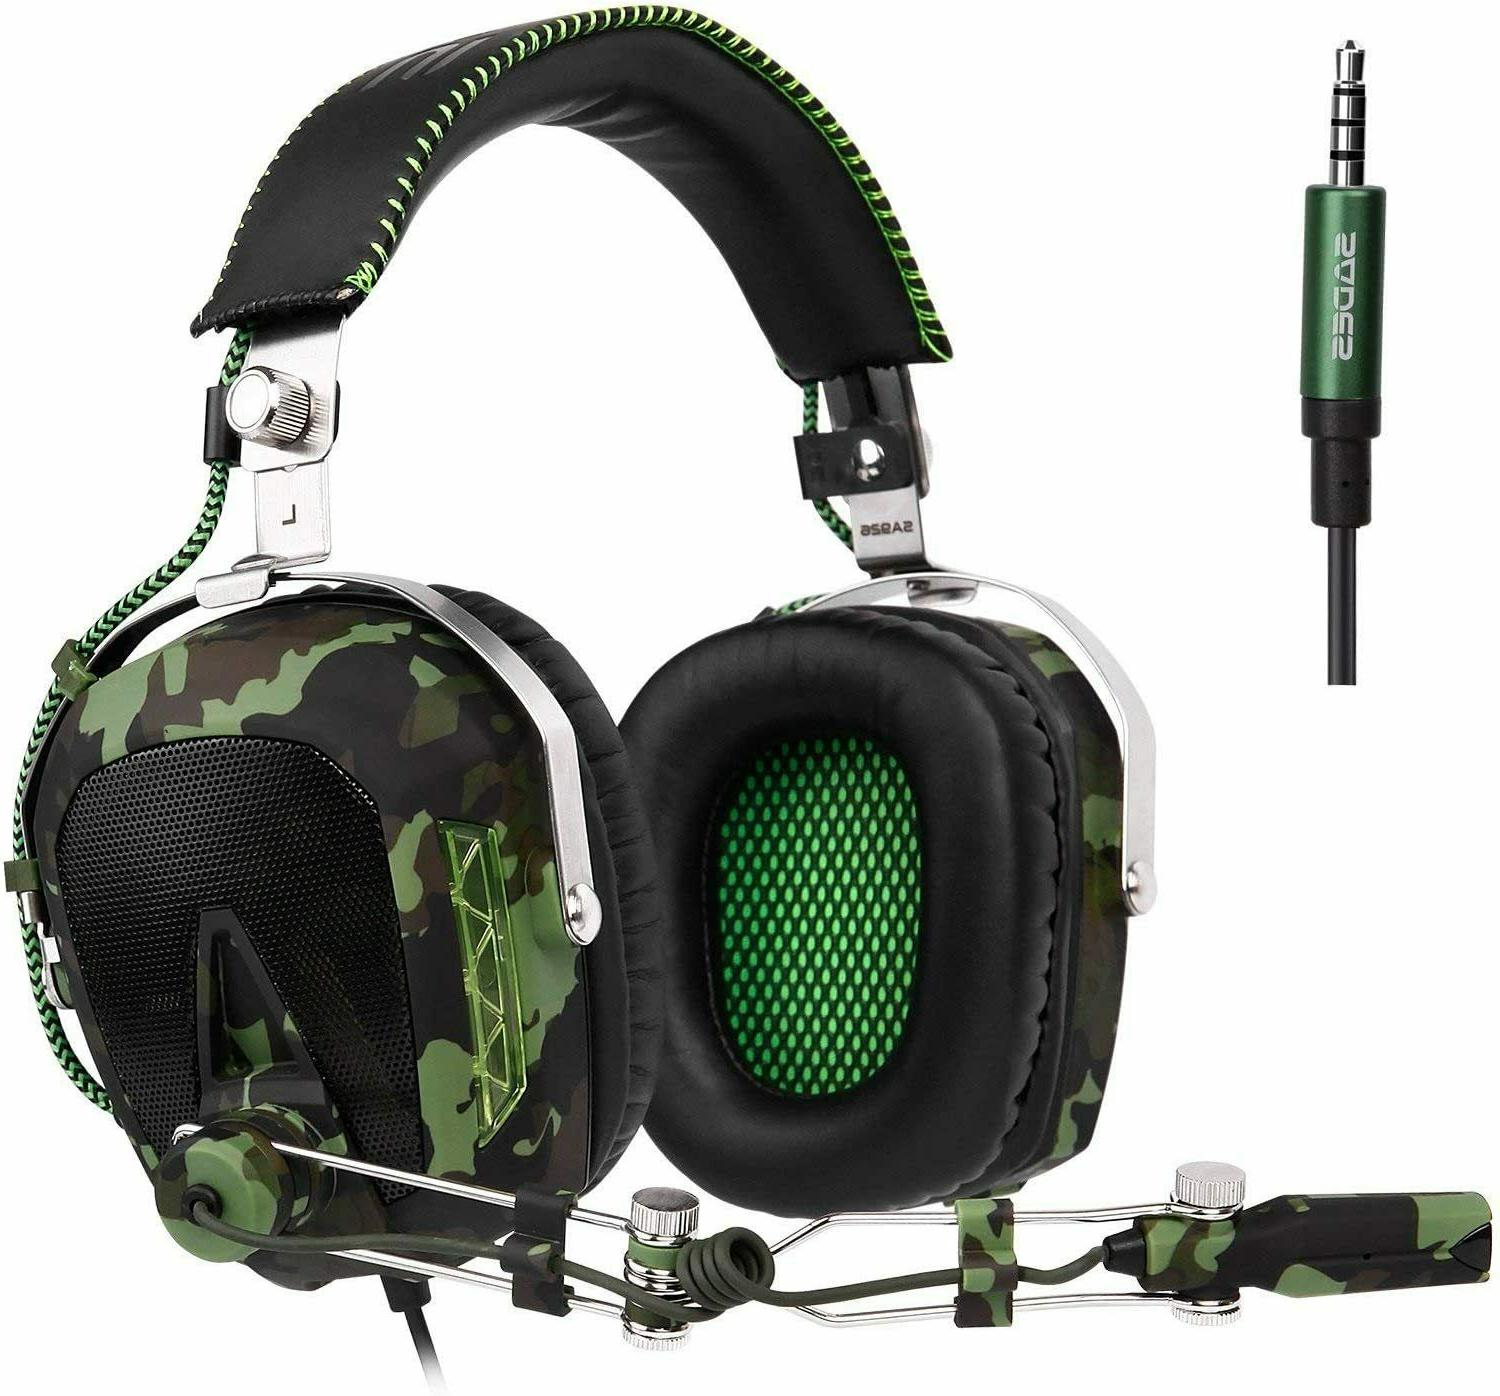 stereo bass gaming headset for ps4 new